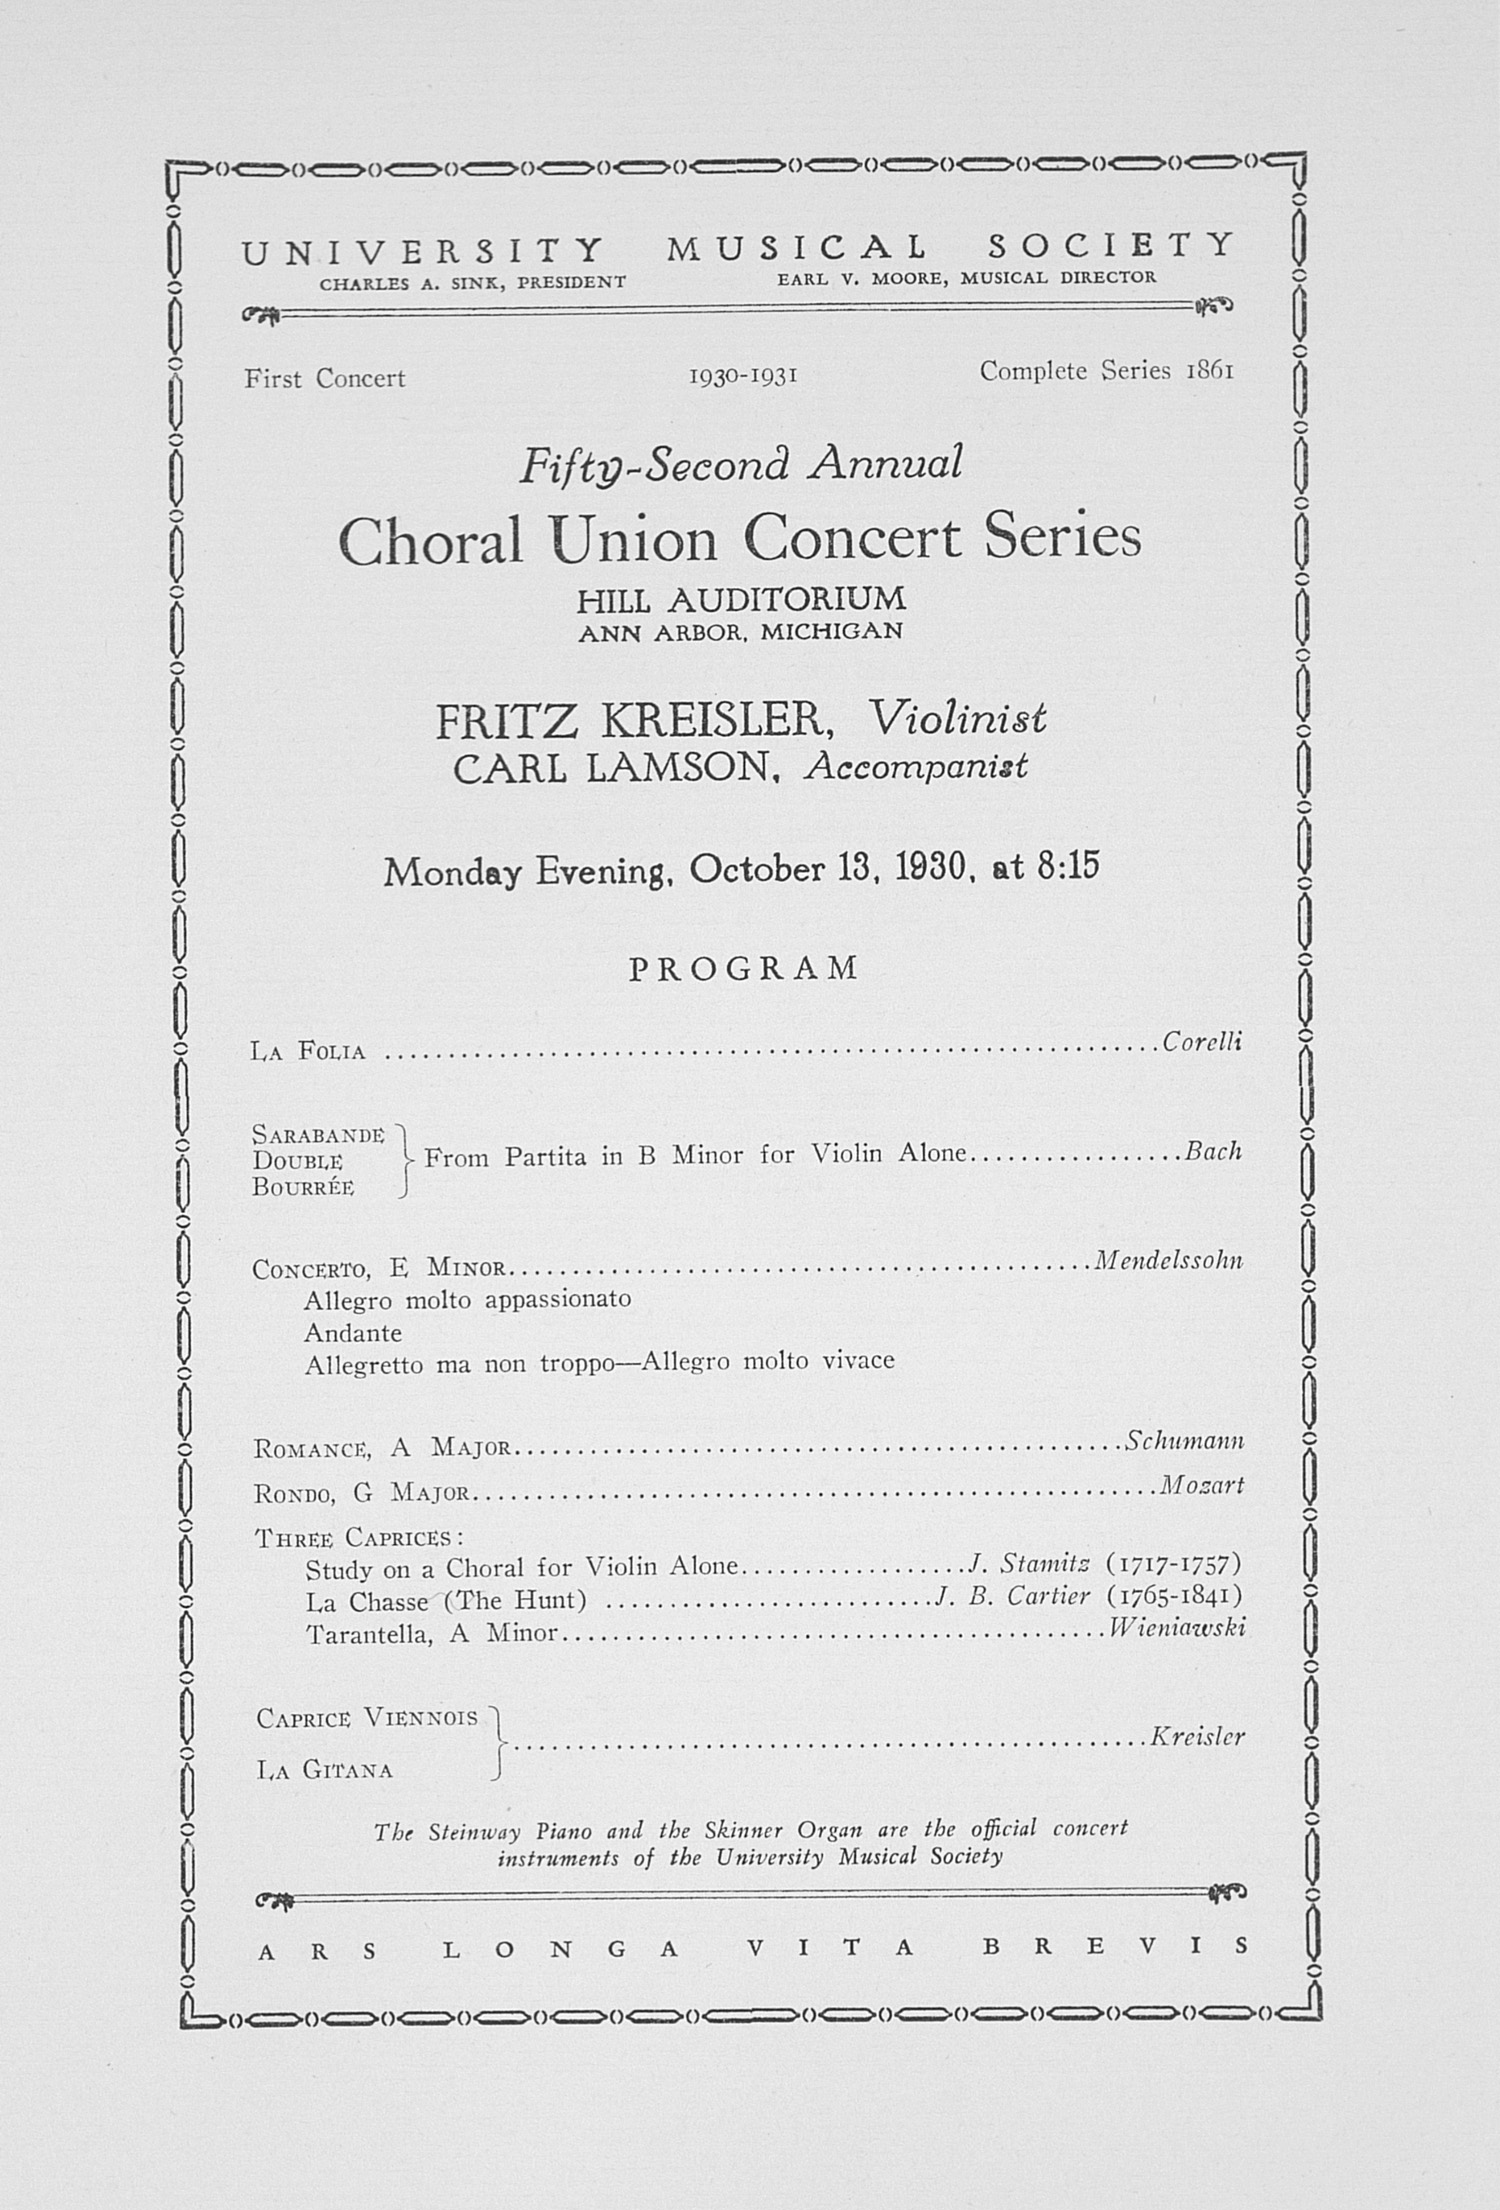 UMS Concert Program, October 13, 1930: Fifty-second Annual Choral Union Concert Series -- Fritz Kreisler image